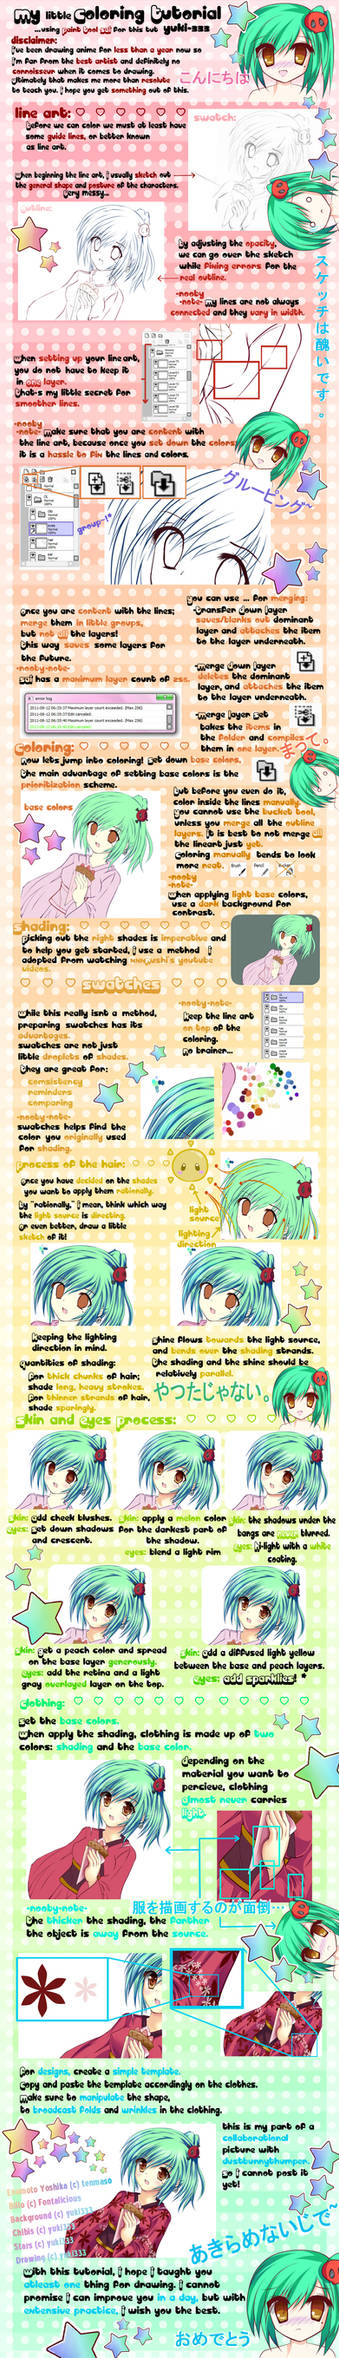 My little coloring tutorial